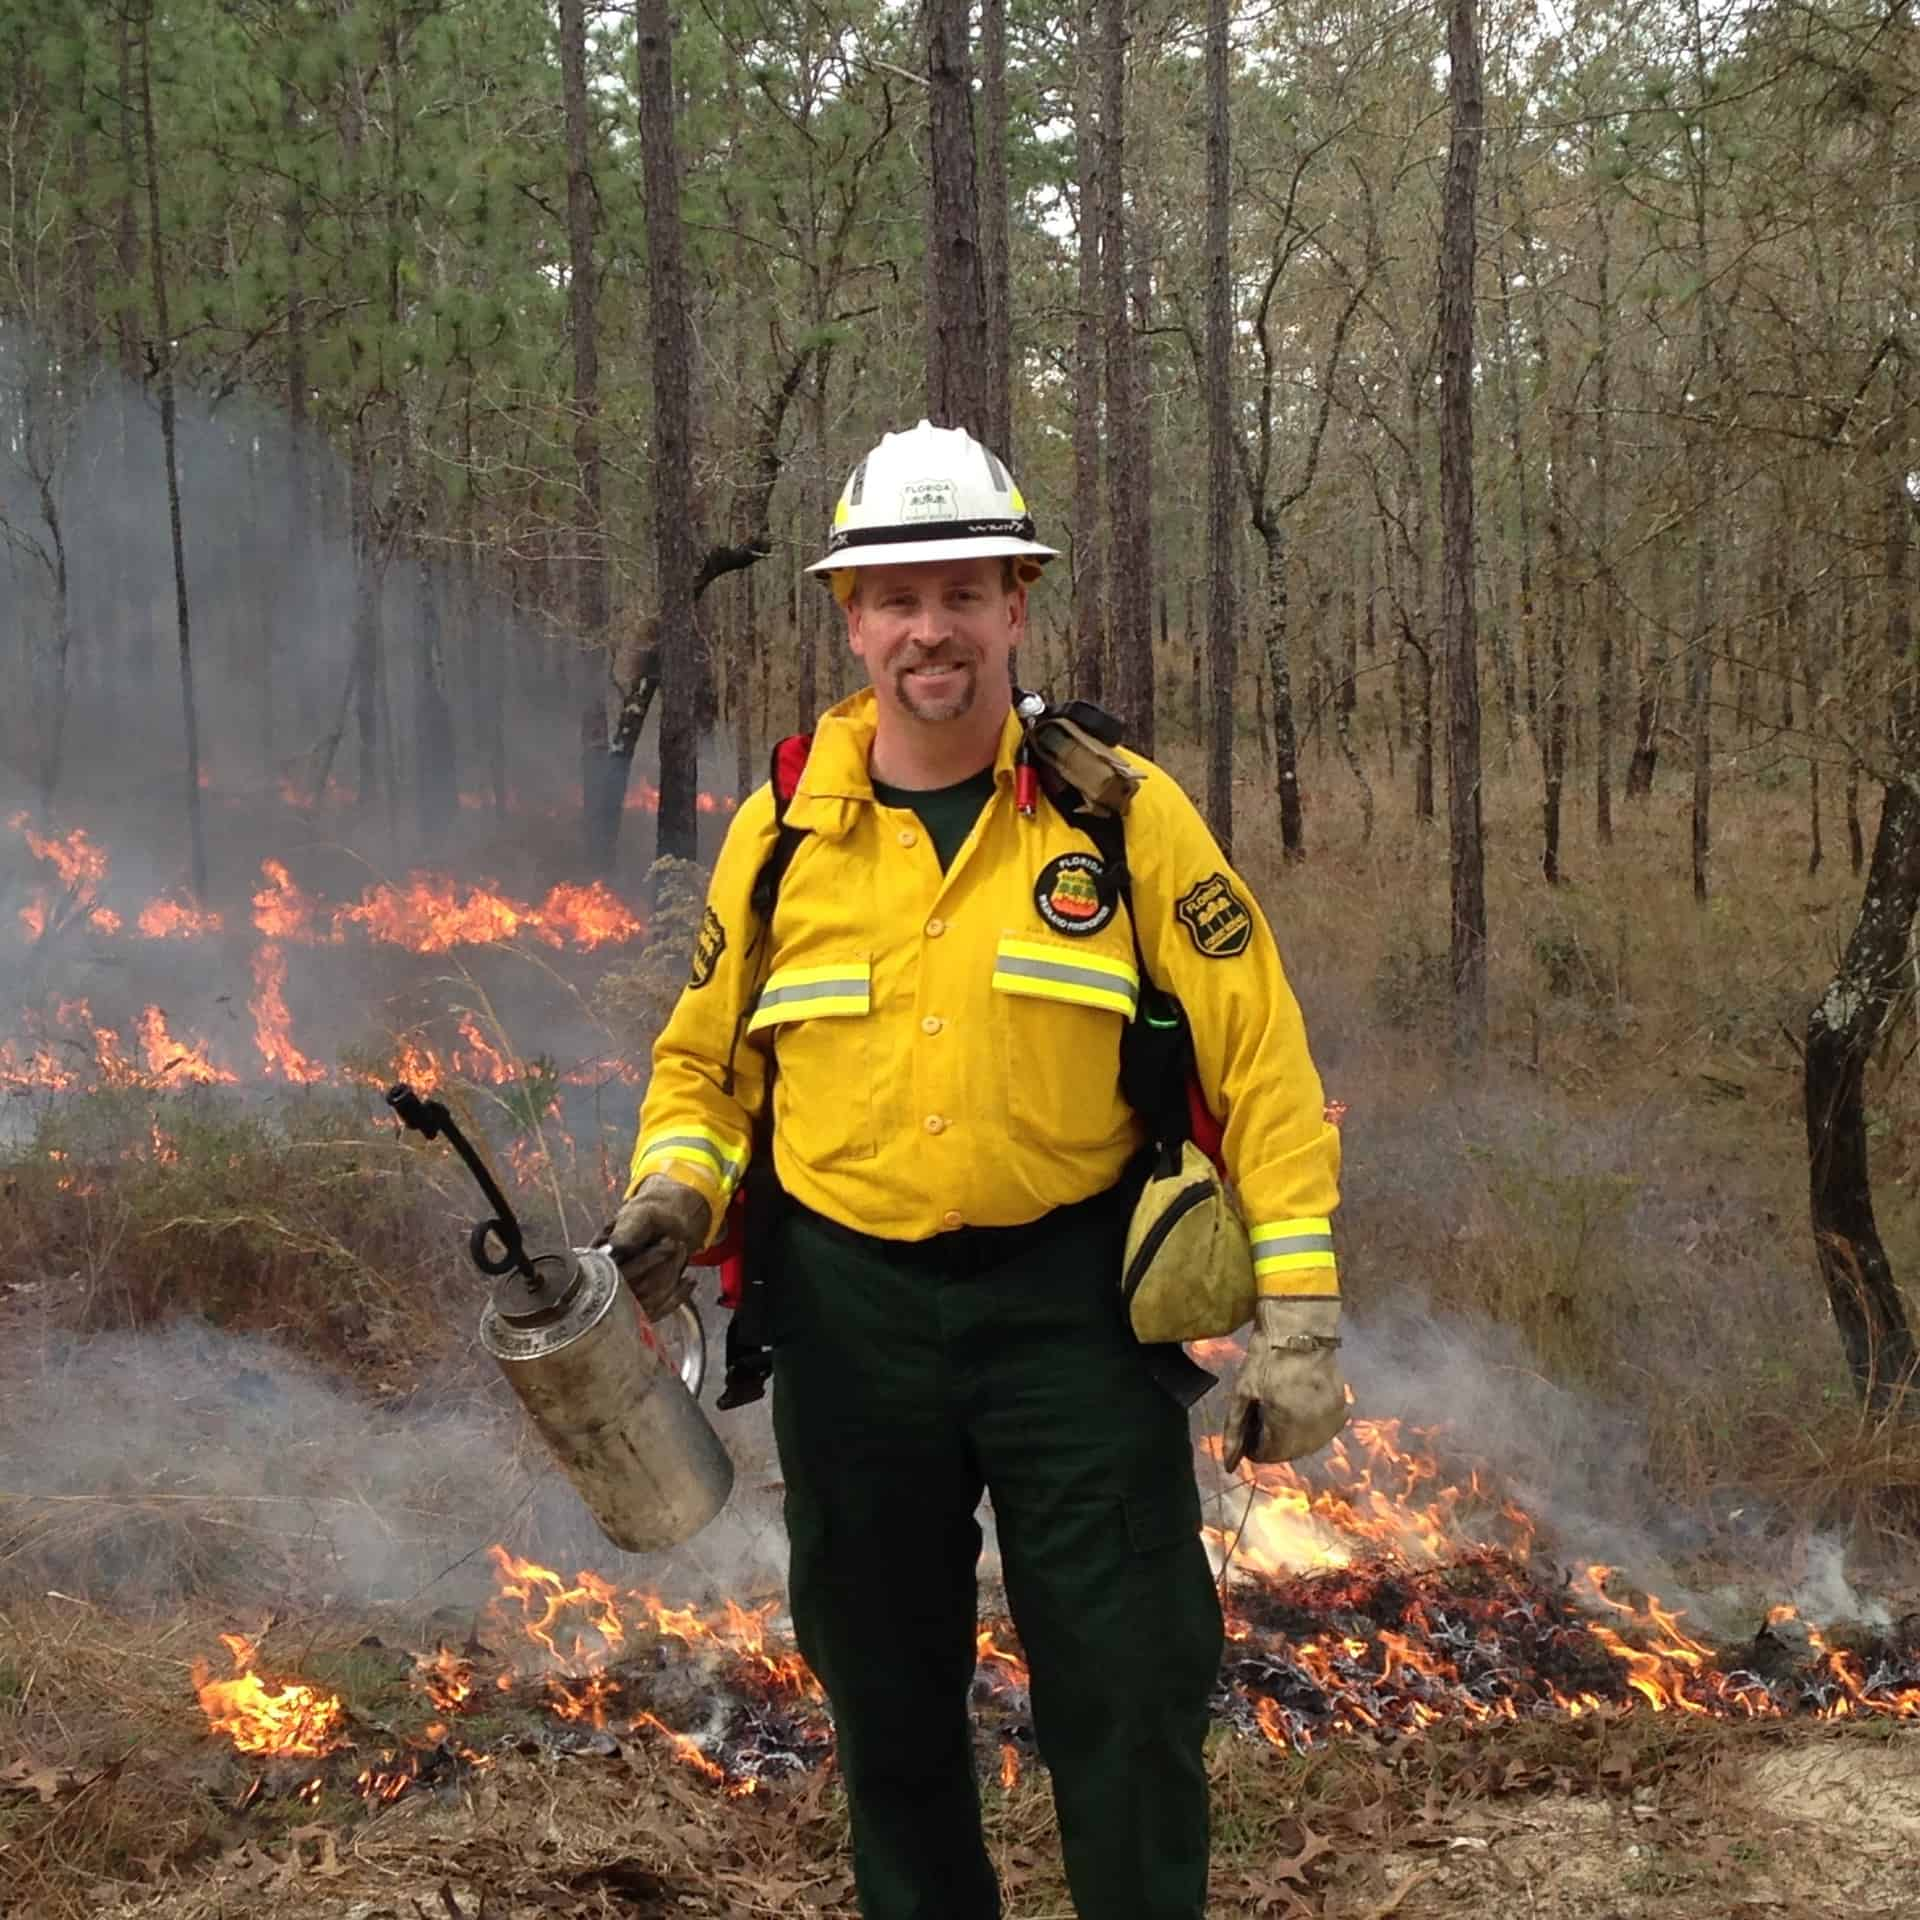 florida department of agriculture and consumer services florida forest service 3125 conner blvd. Florida Prescribed Fire The National Association Of State Foresters And Risk Mapping Meet John Fish